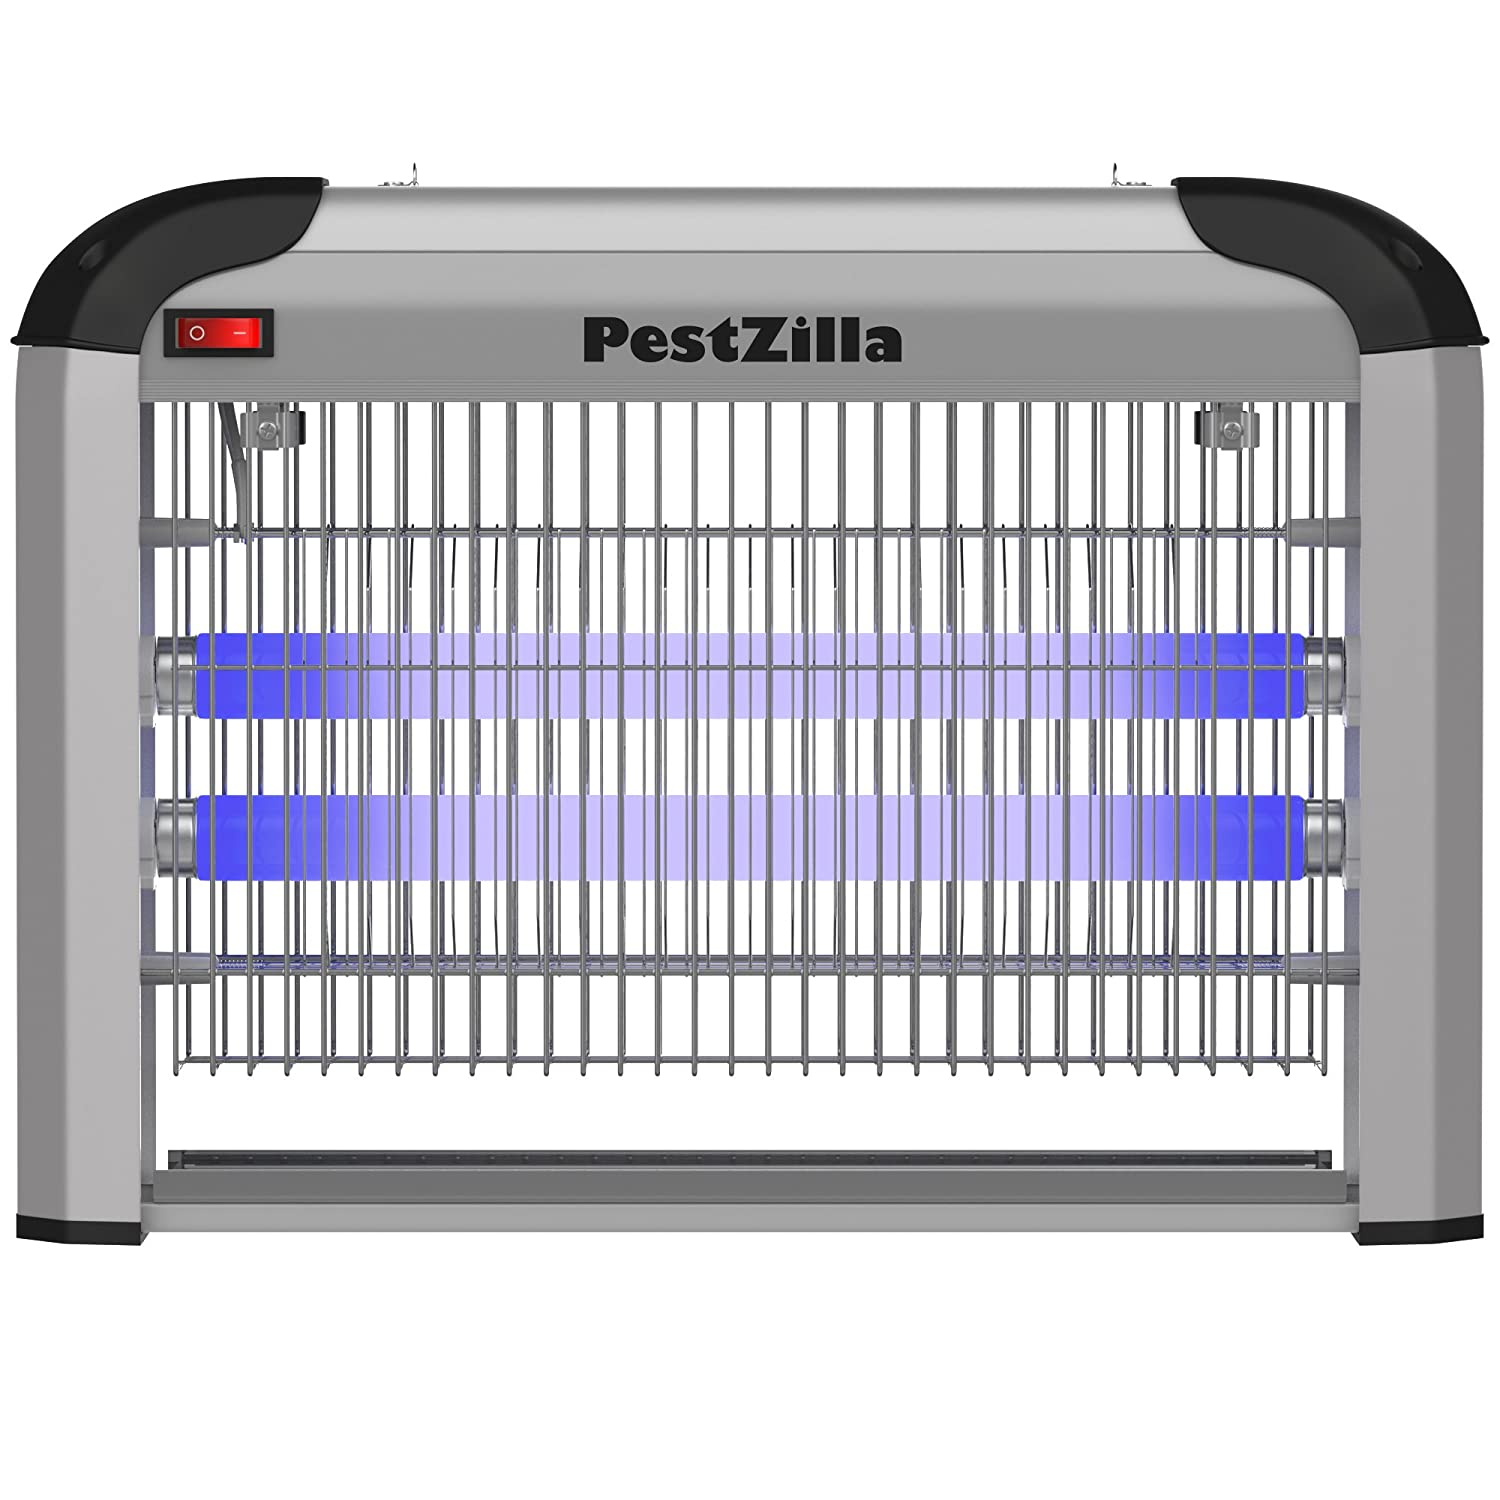 PestZilla Robust UV Electronic Bug Zapper Fly Zapper Killer Trap Pest Control– Protects Up to 6,000 Sq. Feet/for Indoor Use – Kills Flies, Mosquitoes, Insects, Etc – Enjoy an Insect Free Environment